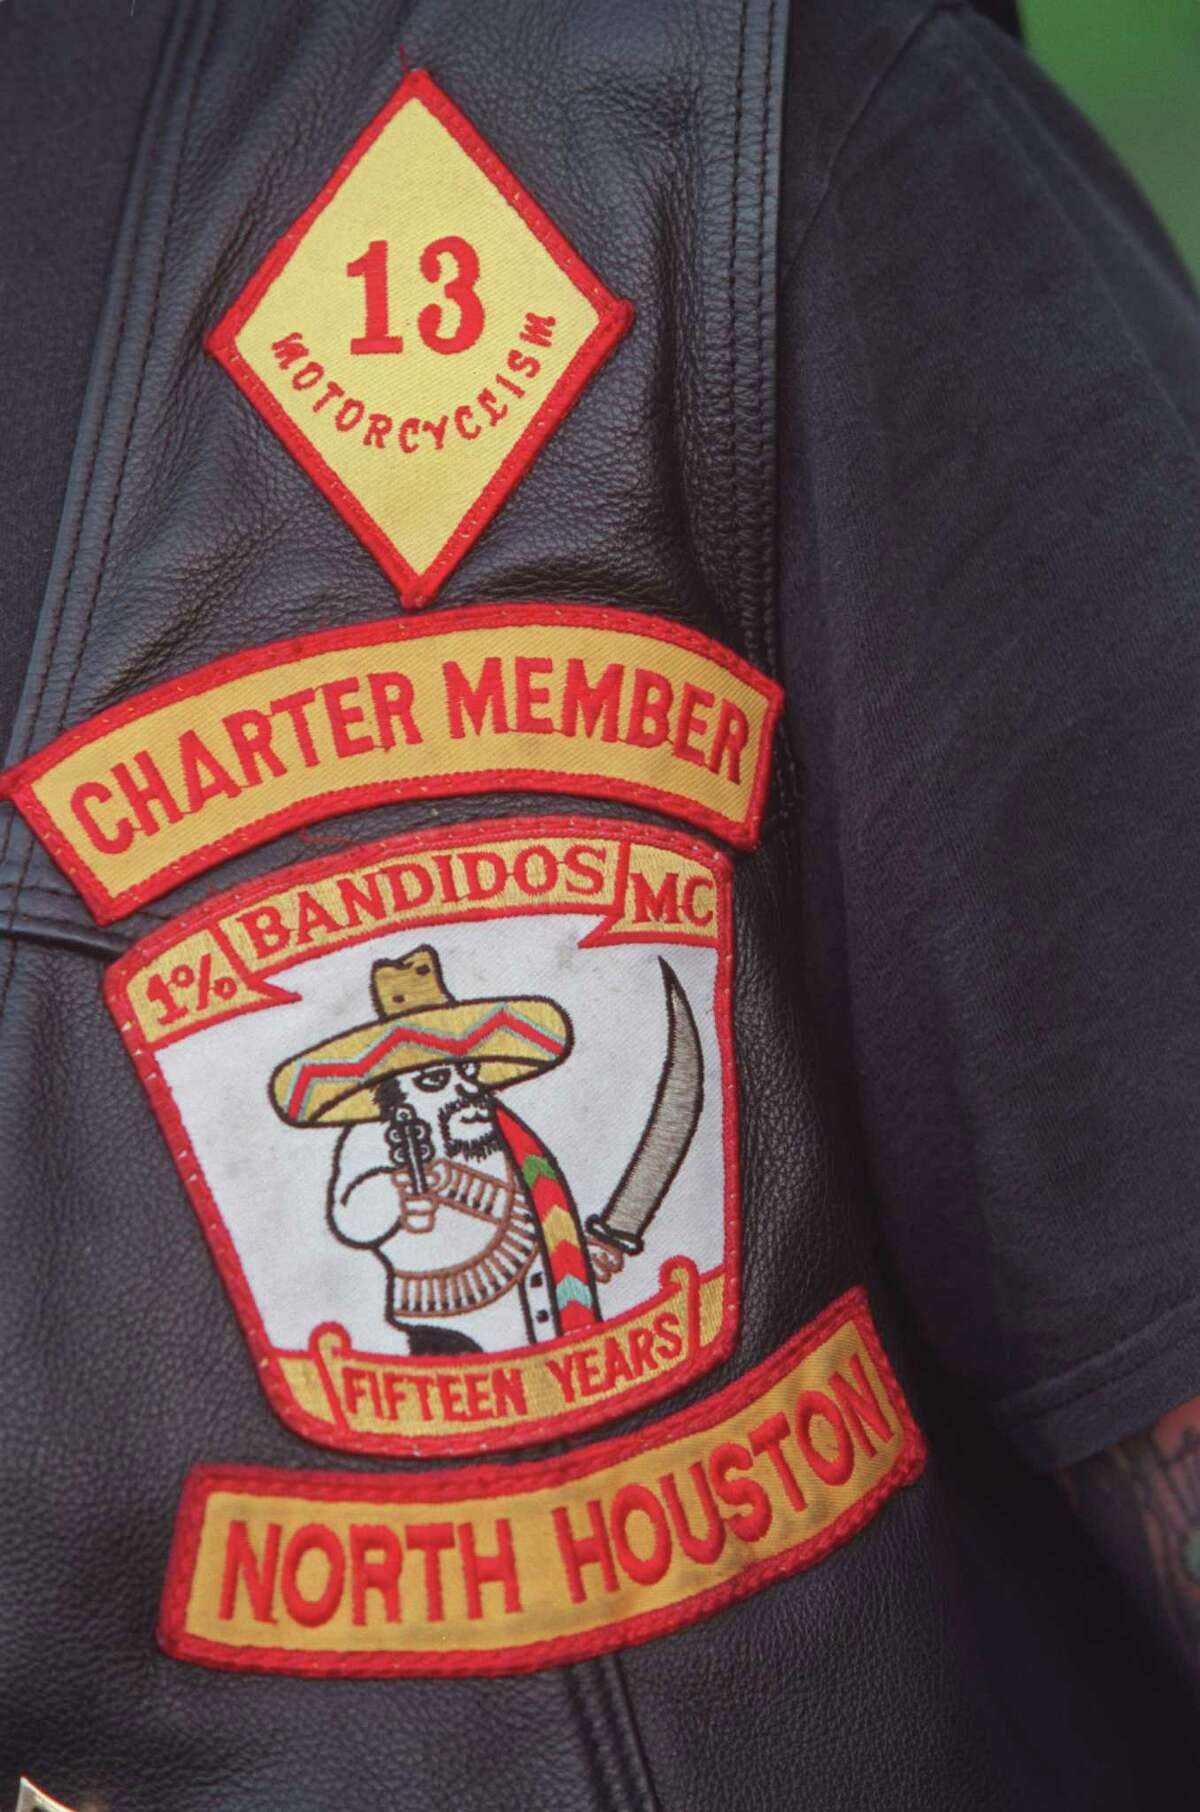 The Anatomy Of Motorcycle Club Patches Explained